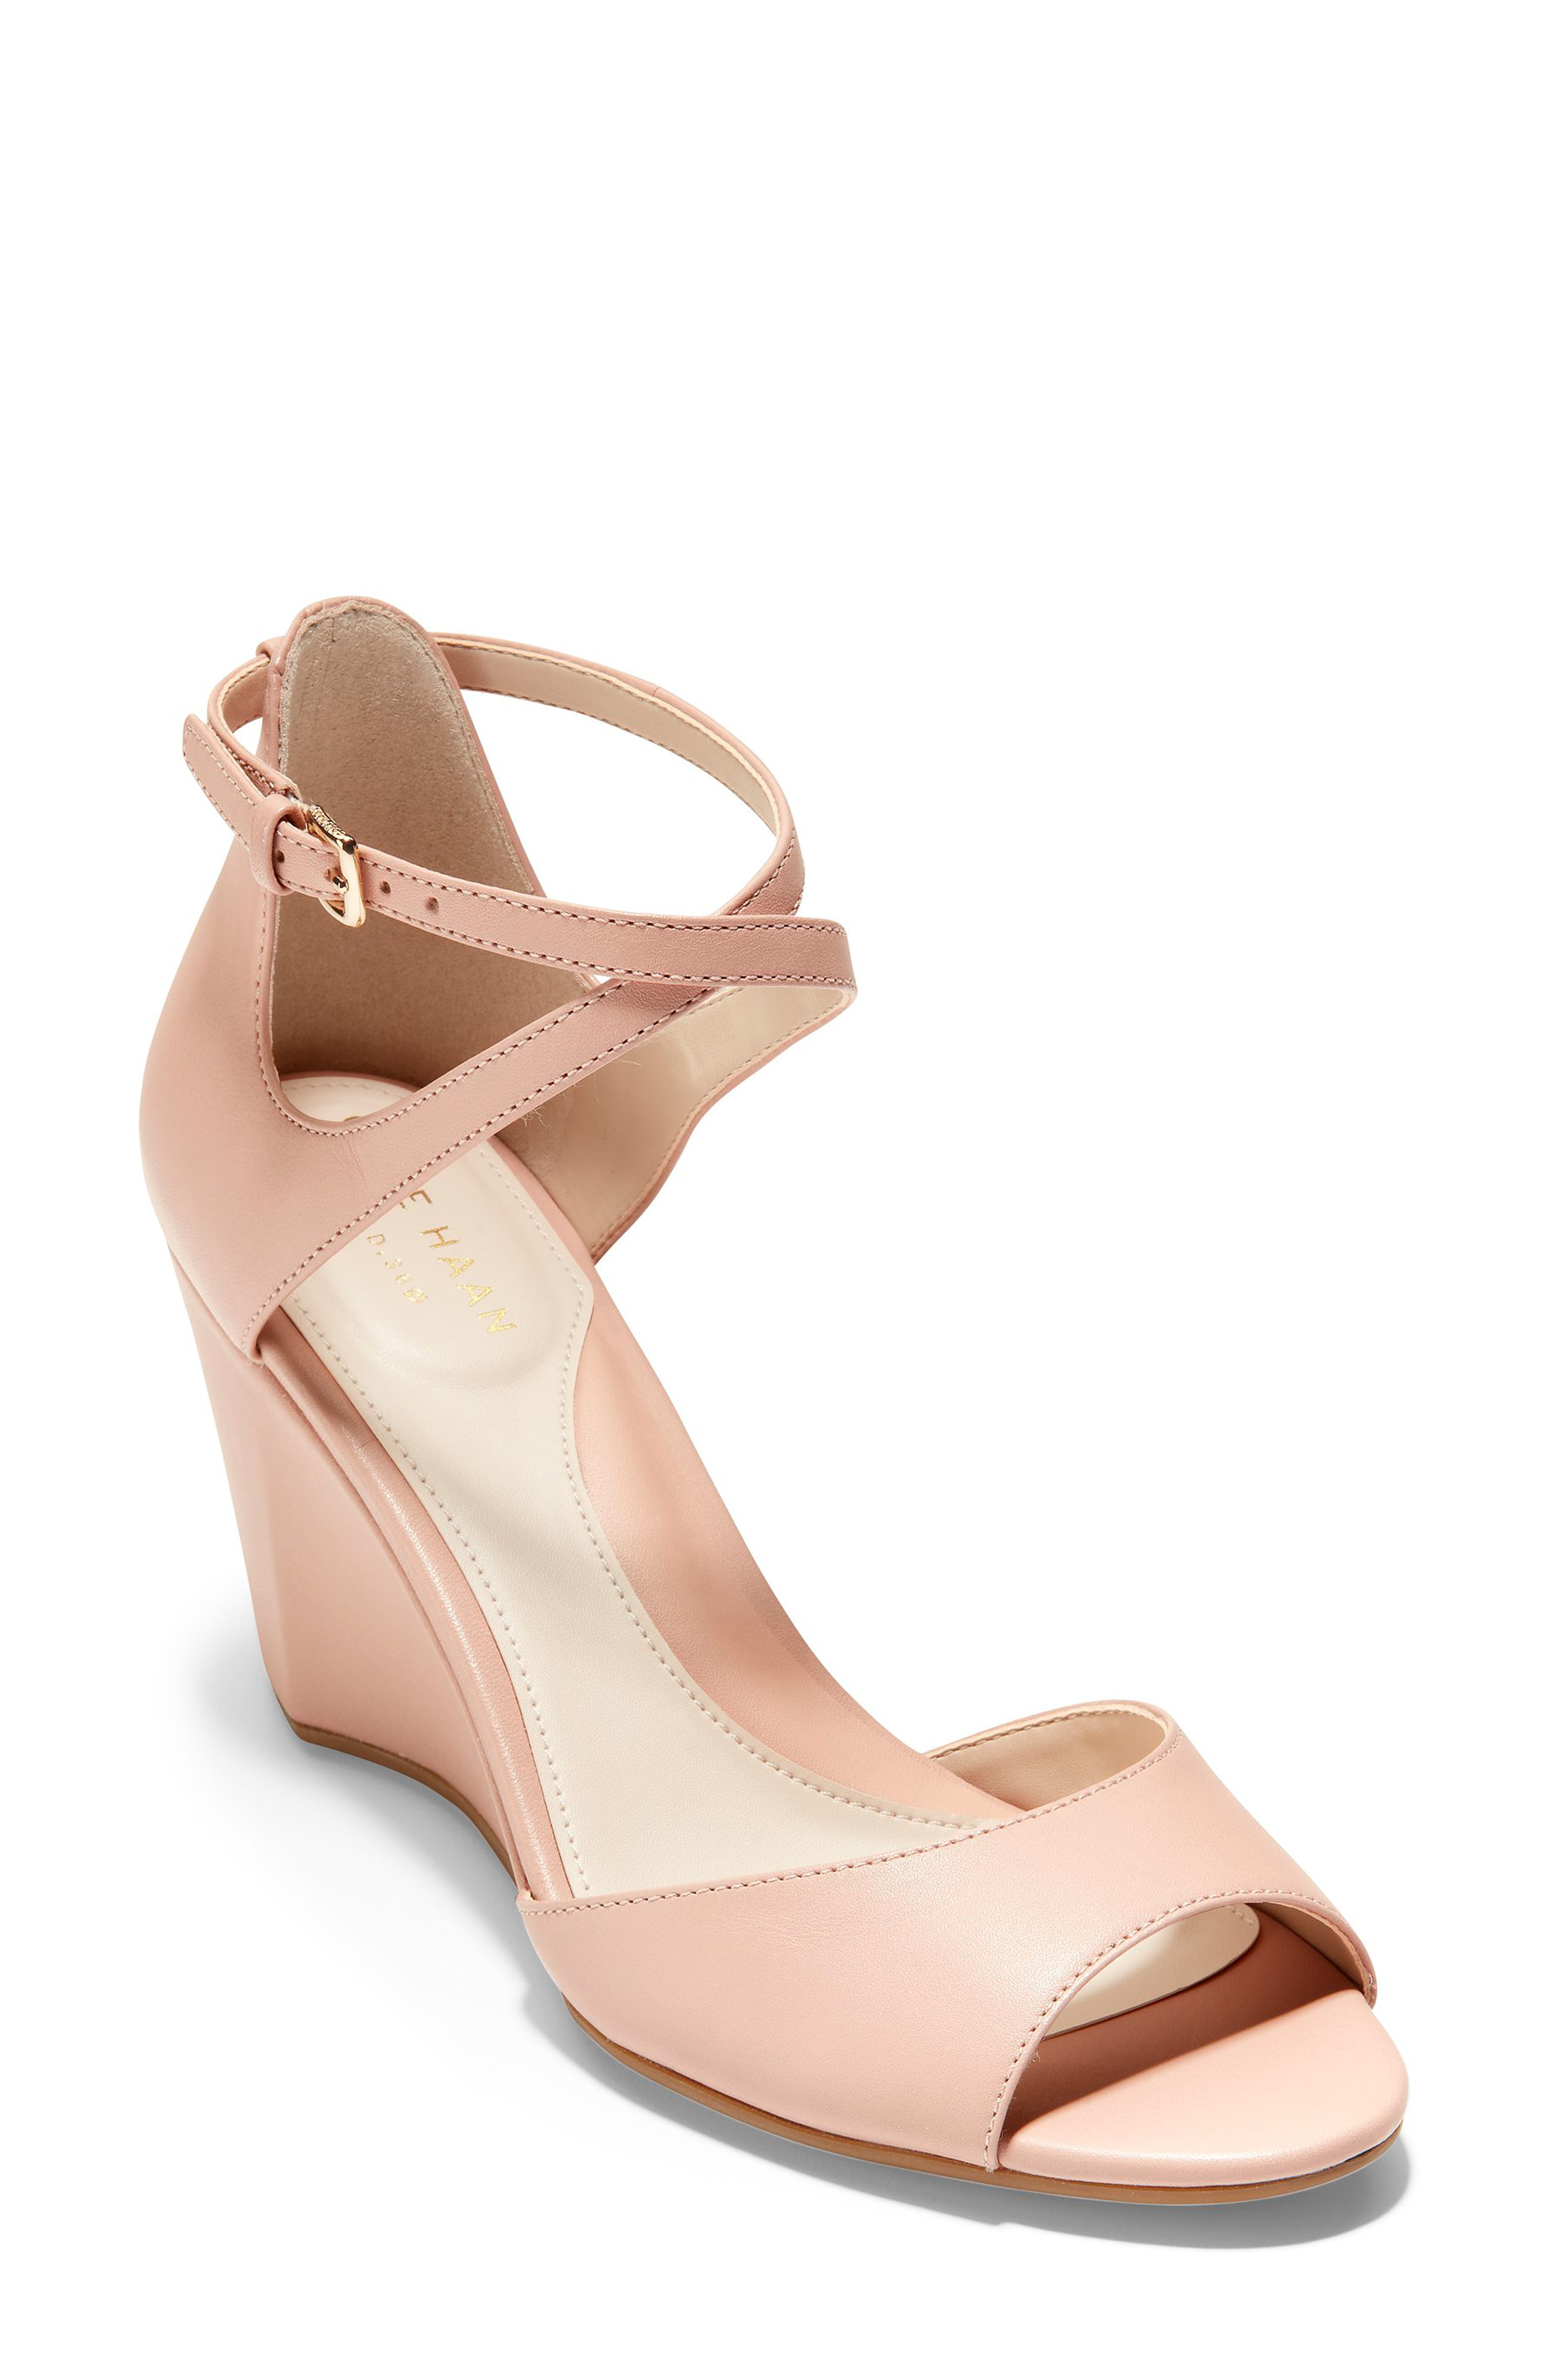 27bb255cb227 Cole Haan Sadie Open Toe Wedge Sandal In Mahogany Rose Leather ...